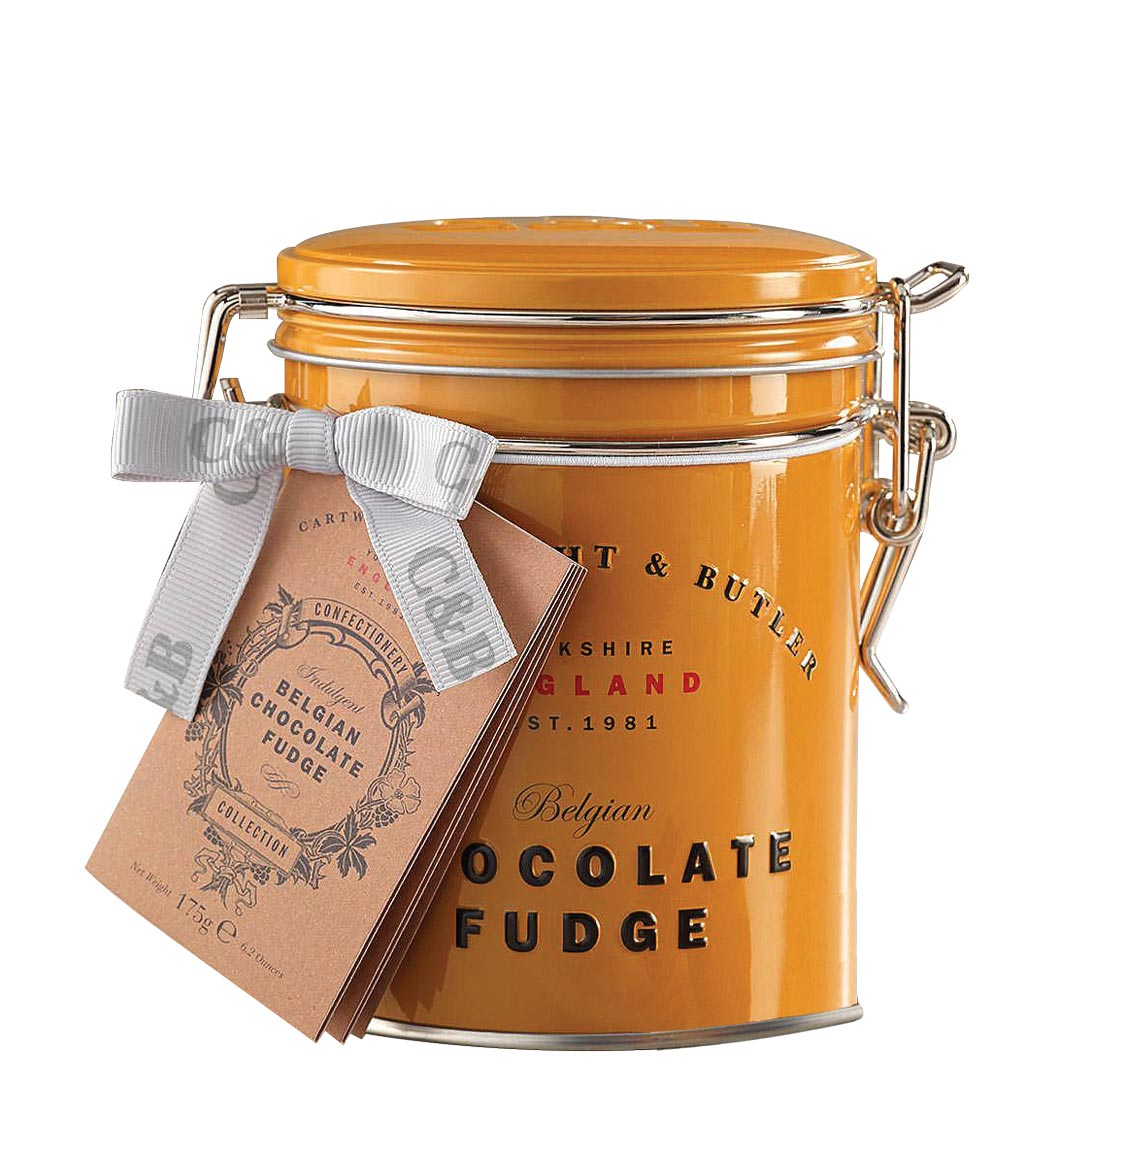 Cartwright_And_Butler_Belgian_Chocolate_Fudge_in_Tin_The_Project_Garments_A